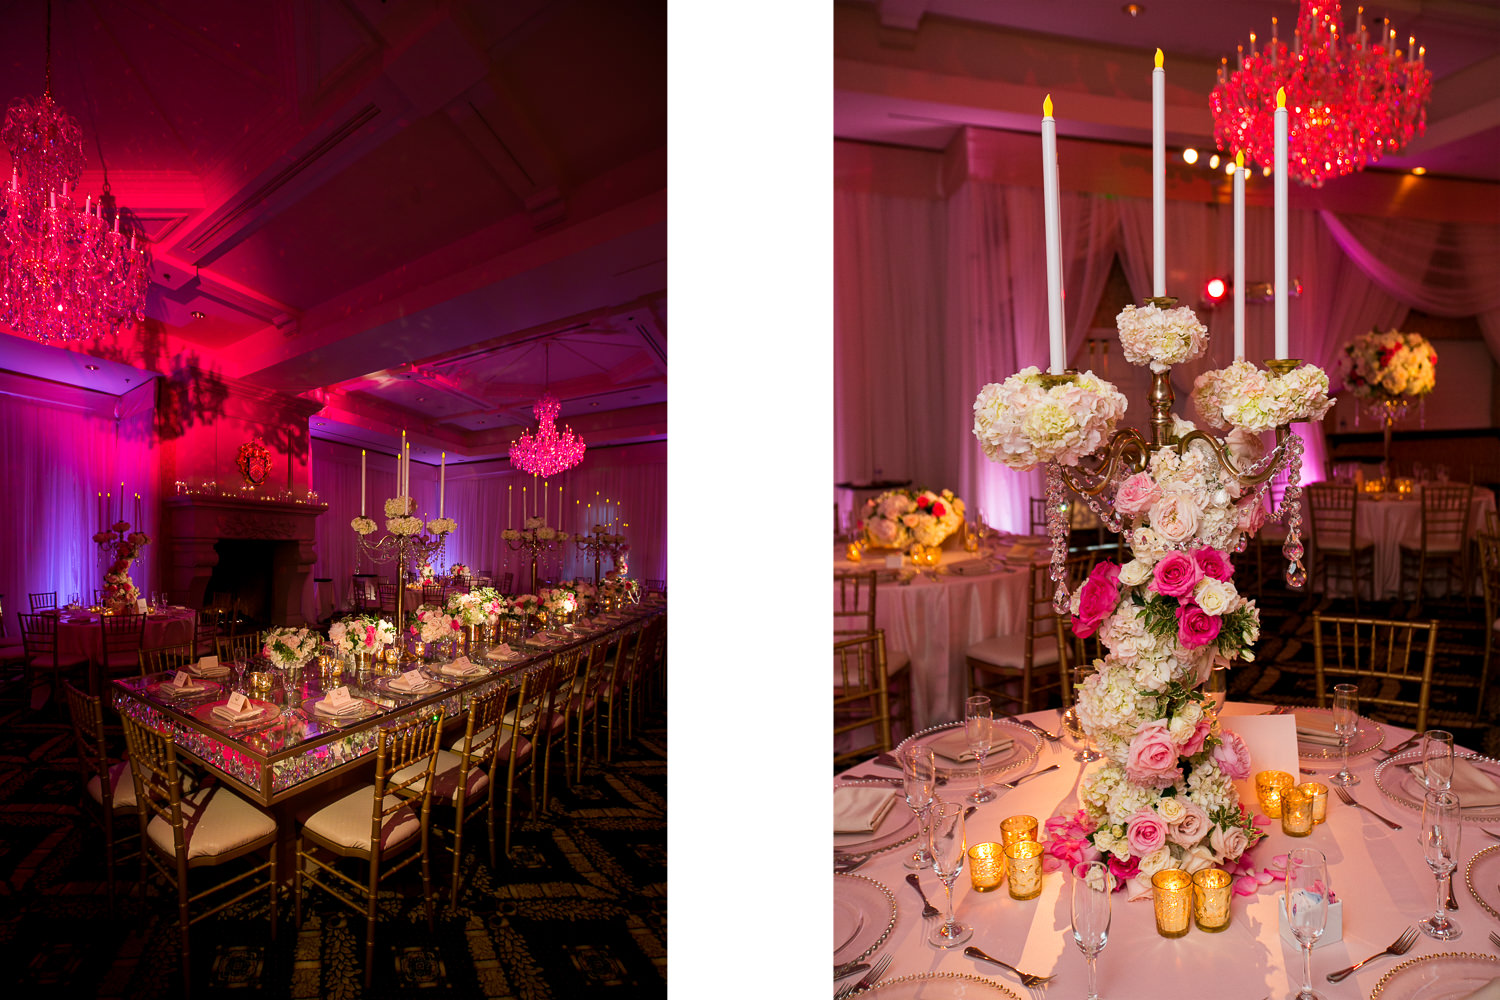 South Asian Trump National Golf Club Wedding - Wedding Reception Decor